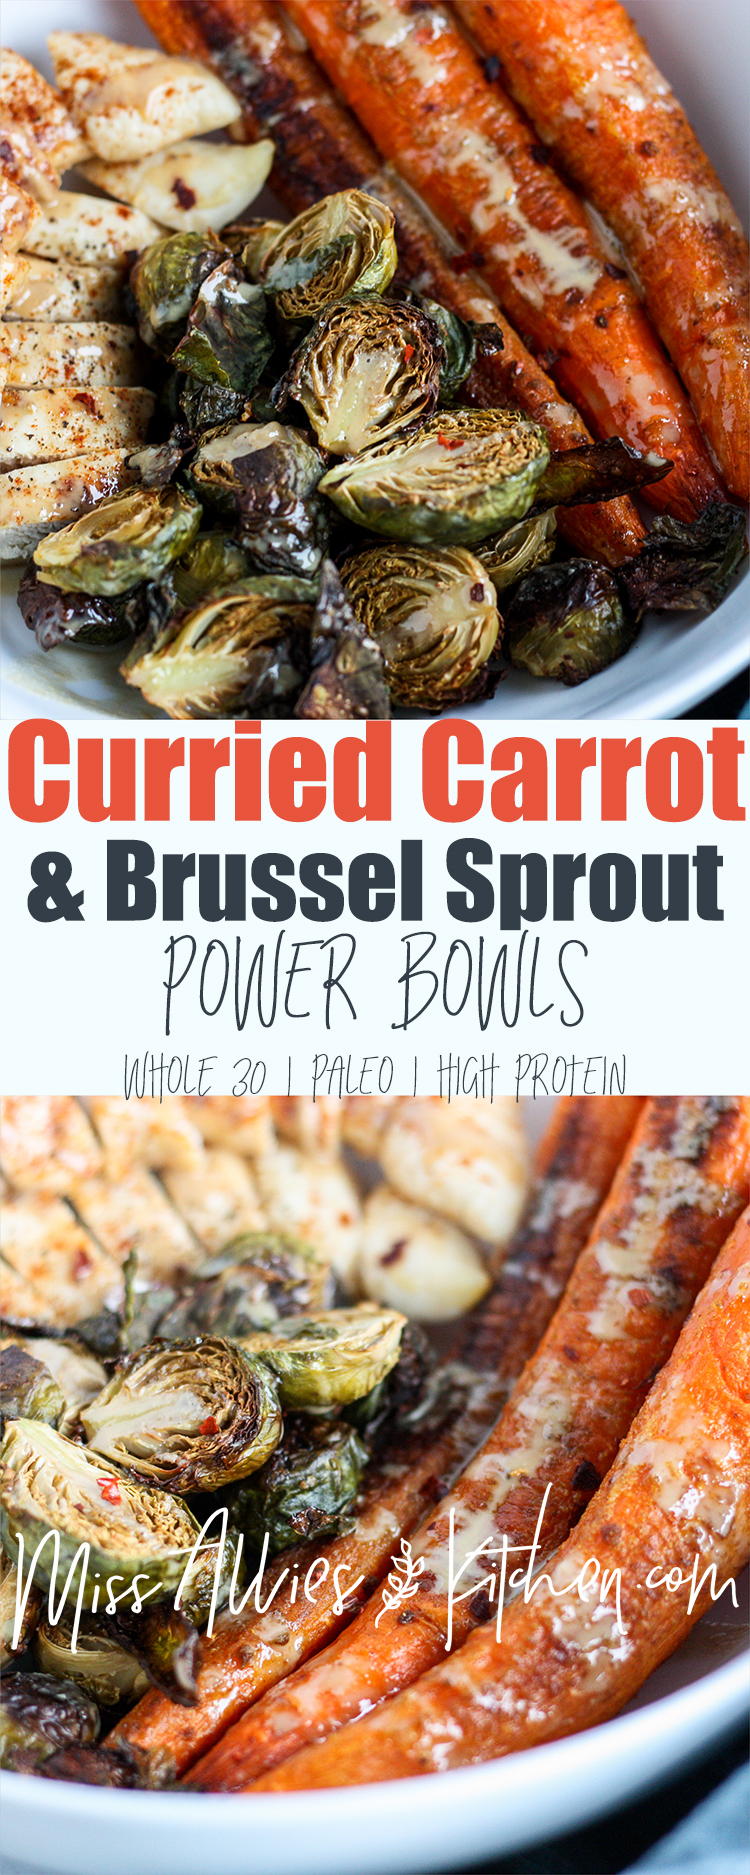 Curried Carrot and Brussel Sprout Power Bowls